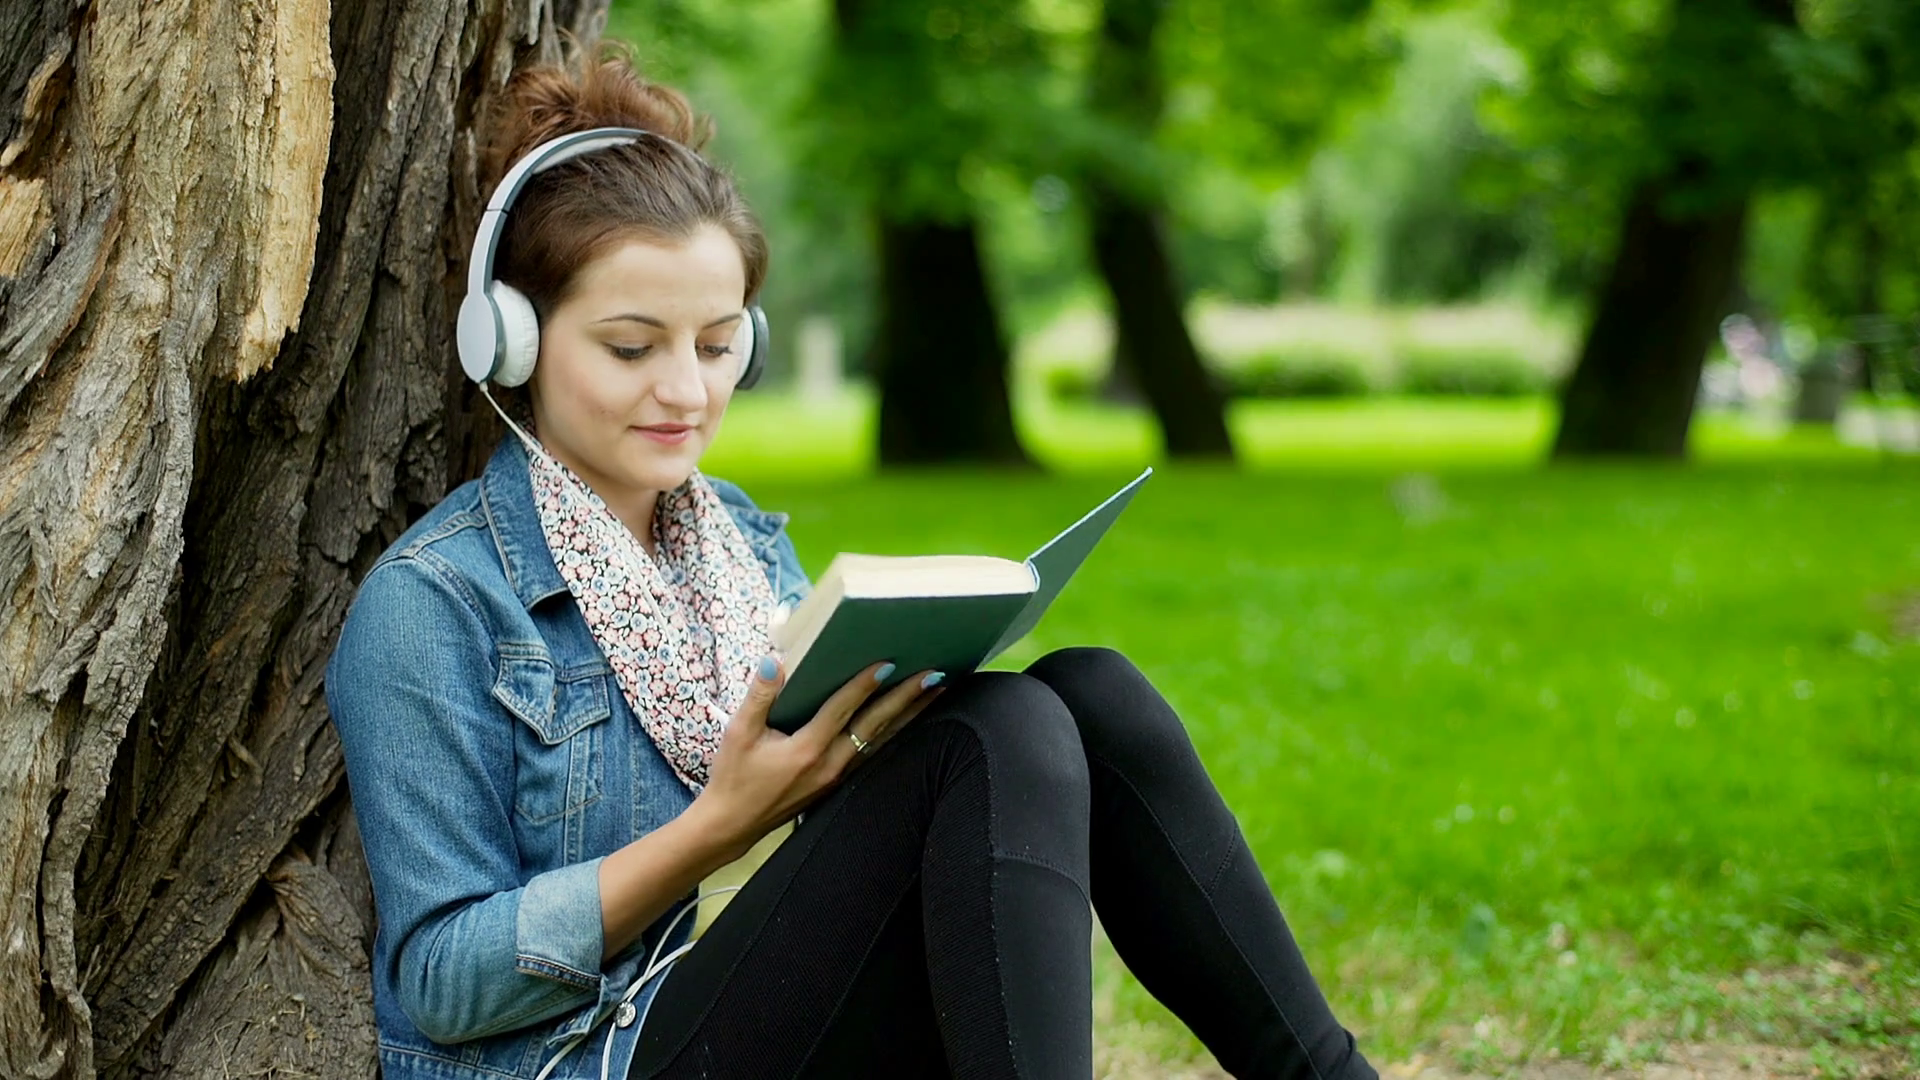 How to Choose the Best Music for Studying